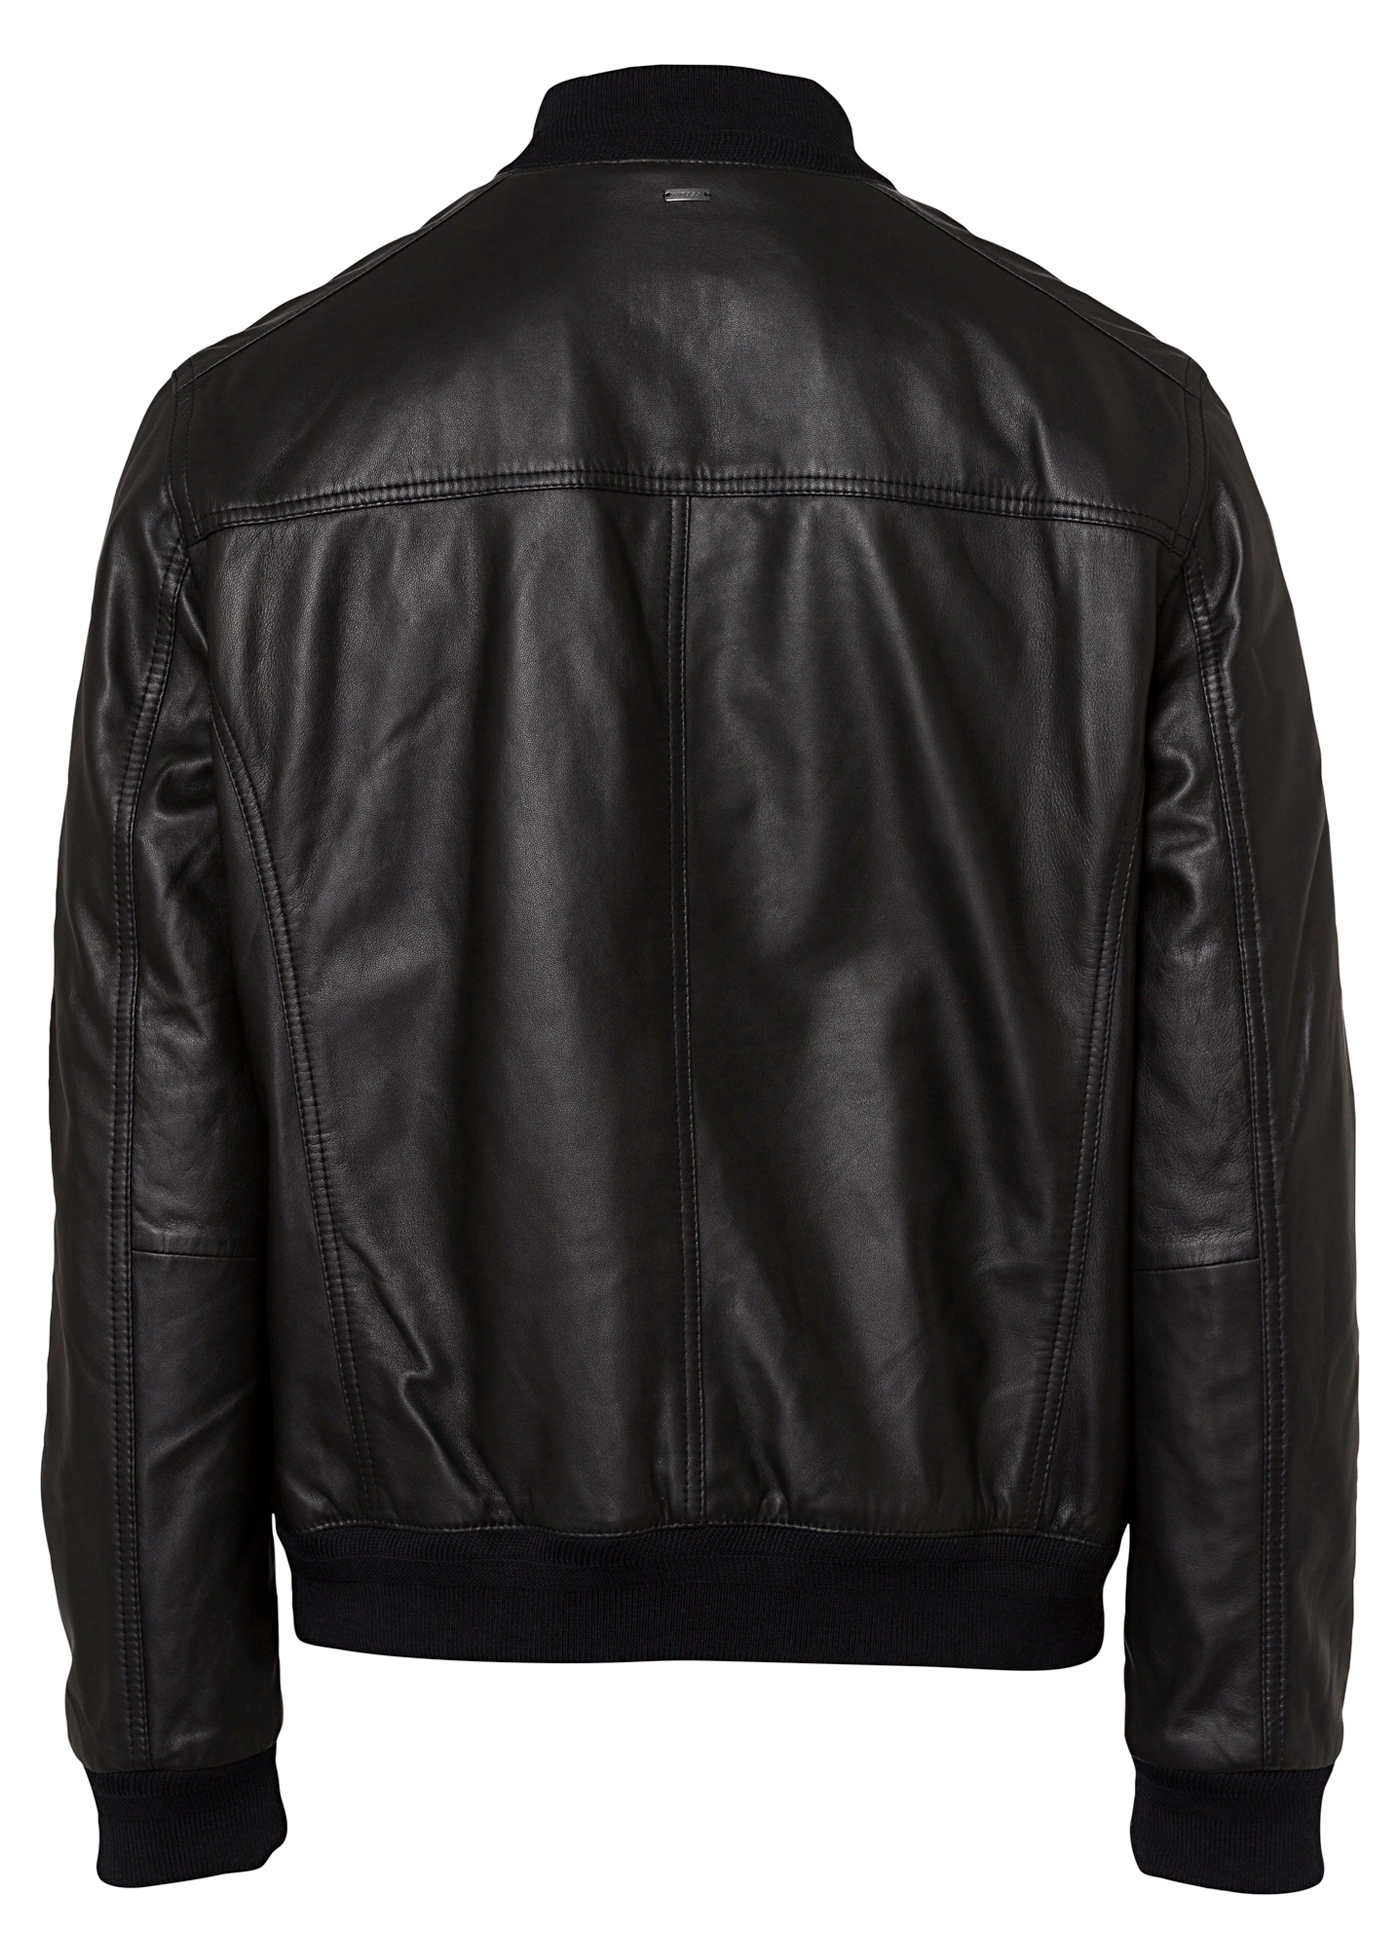 leather jacket Lavello L image number 1